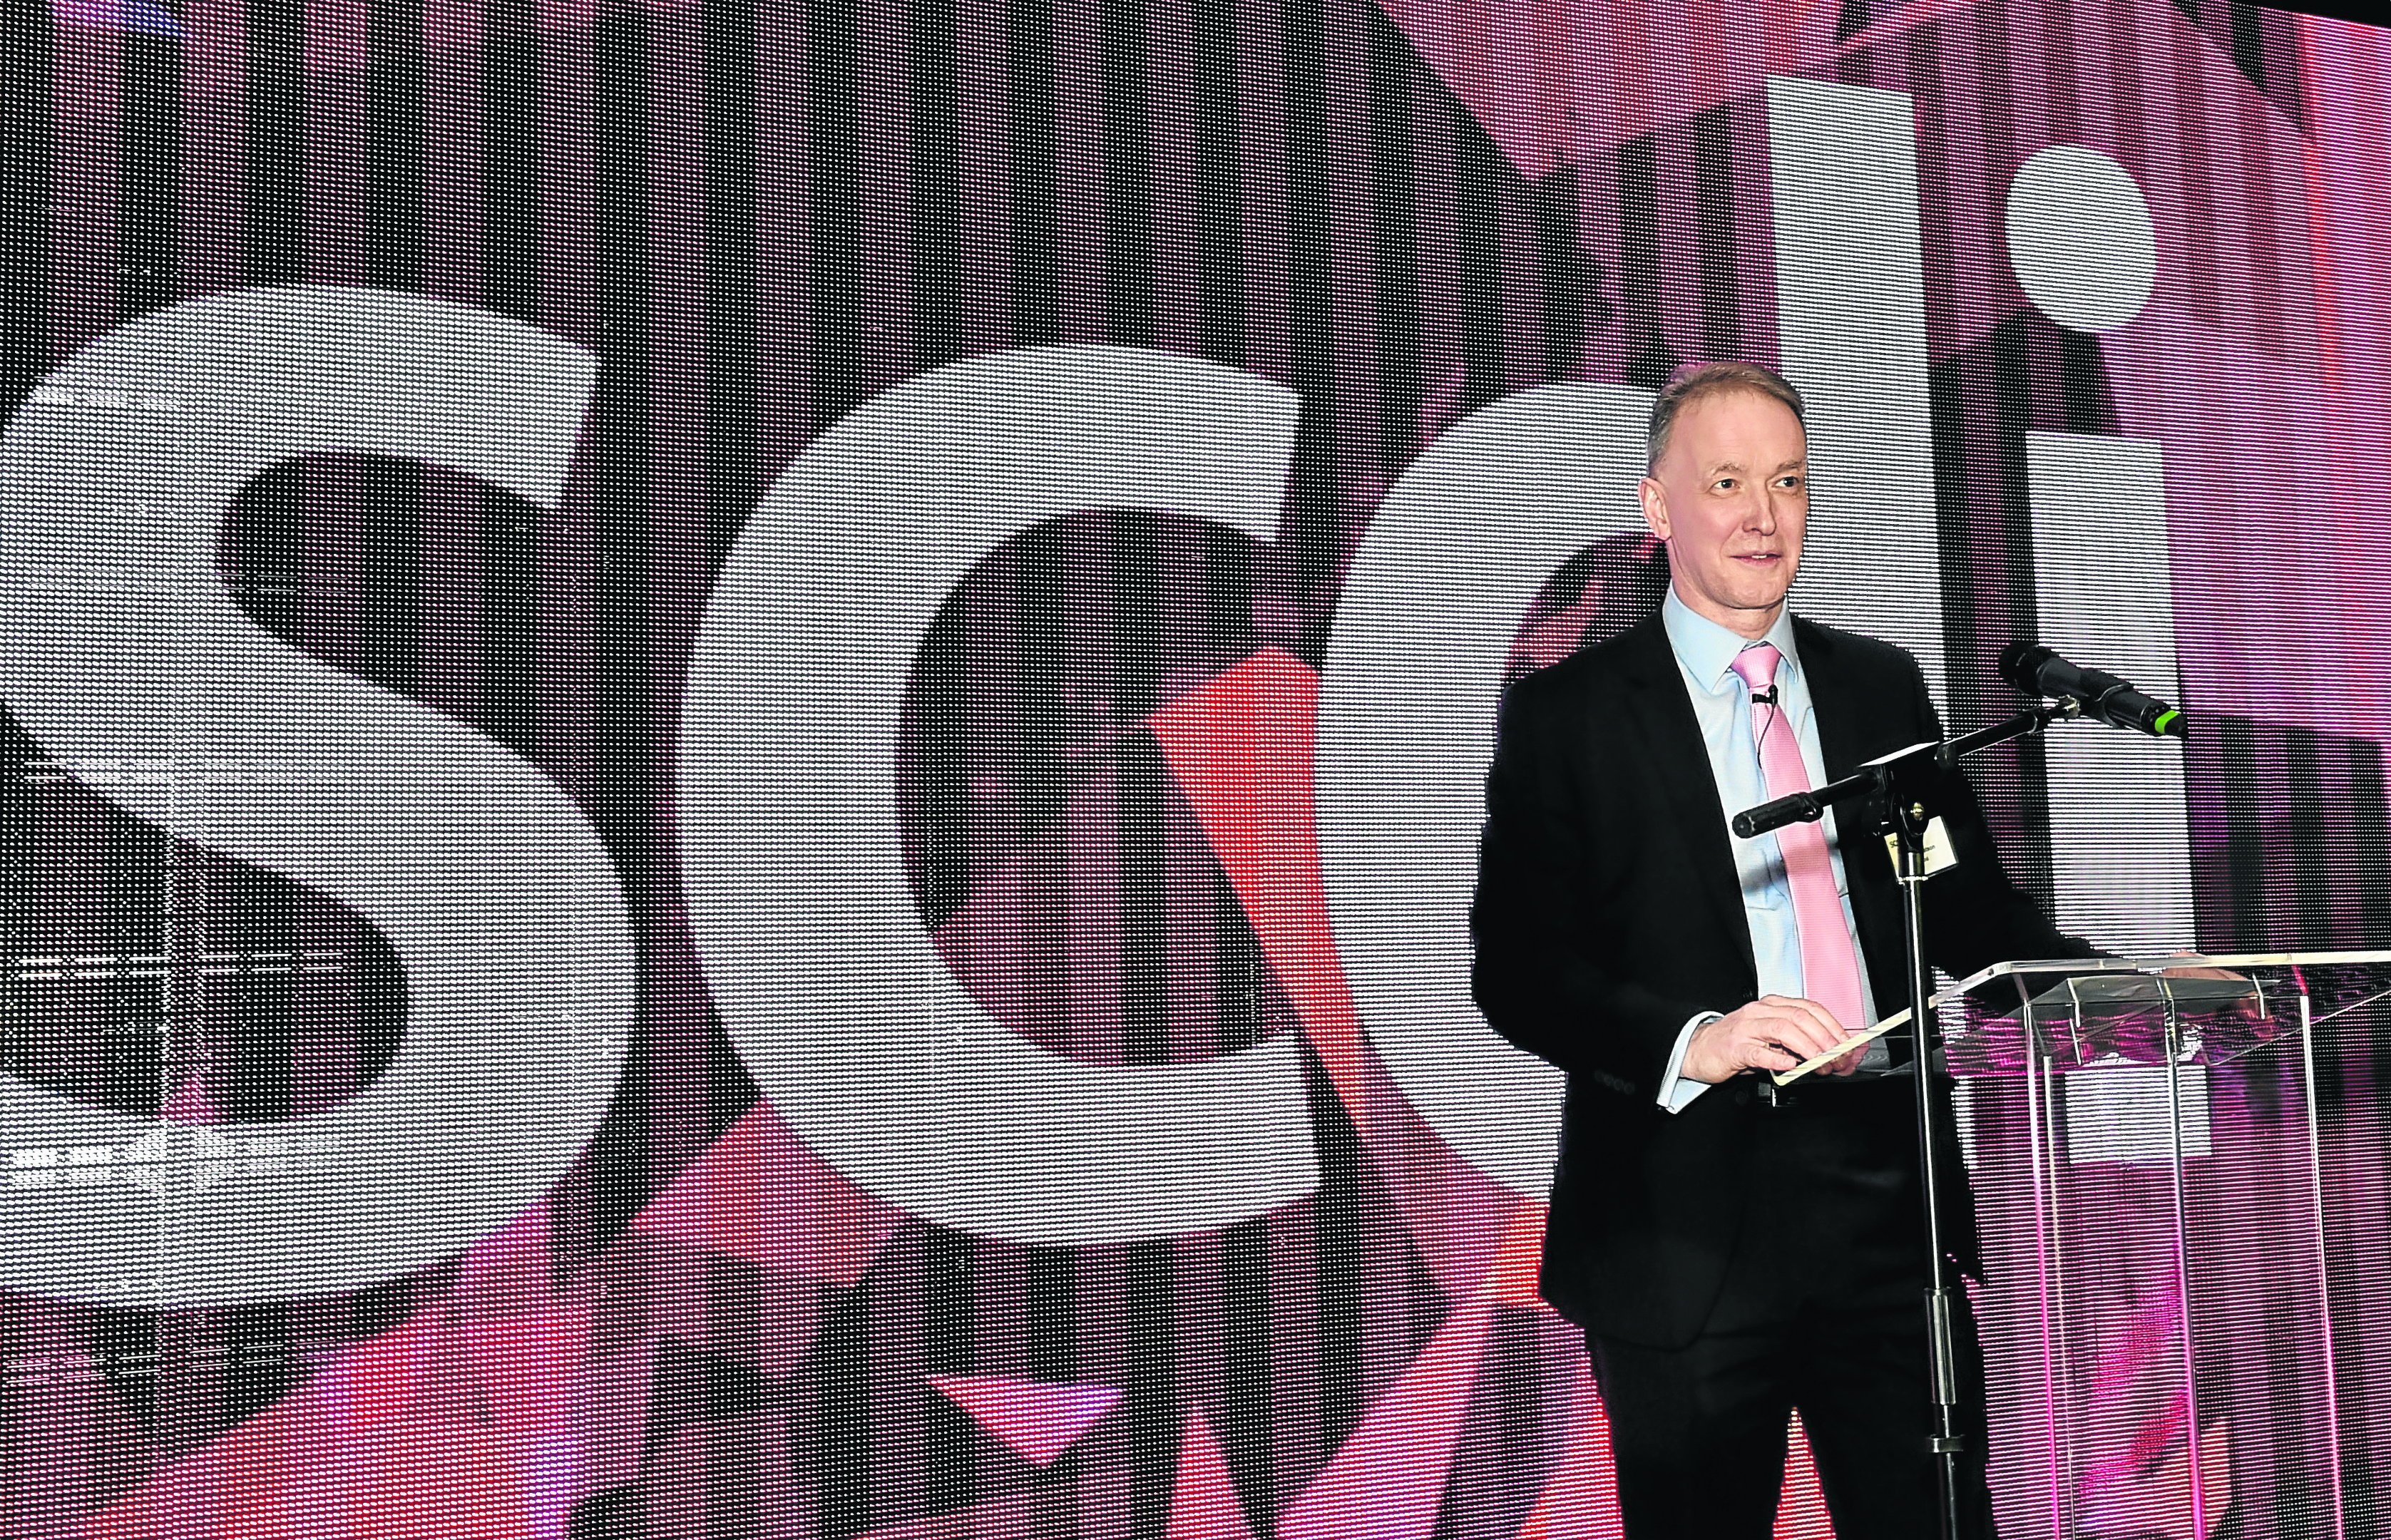 ADDRESS : Robin Watson, CEO of Wood, gives the SCDI annual lecture. Photograph by Colin Rennie